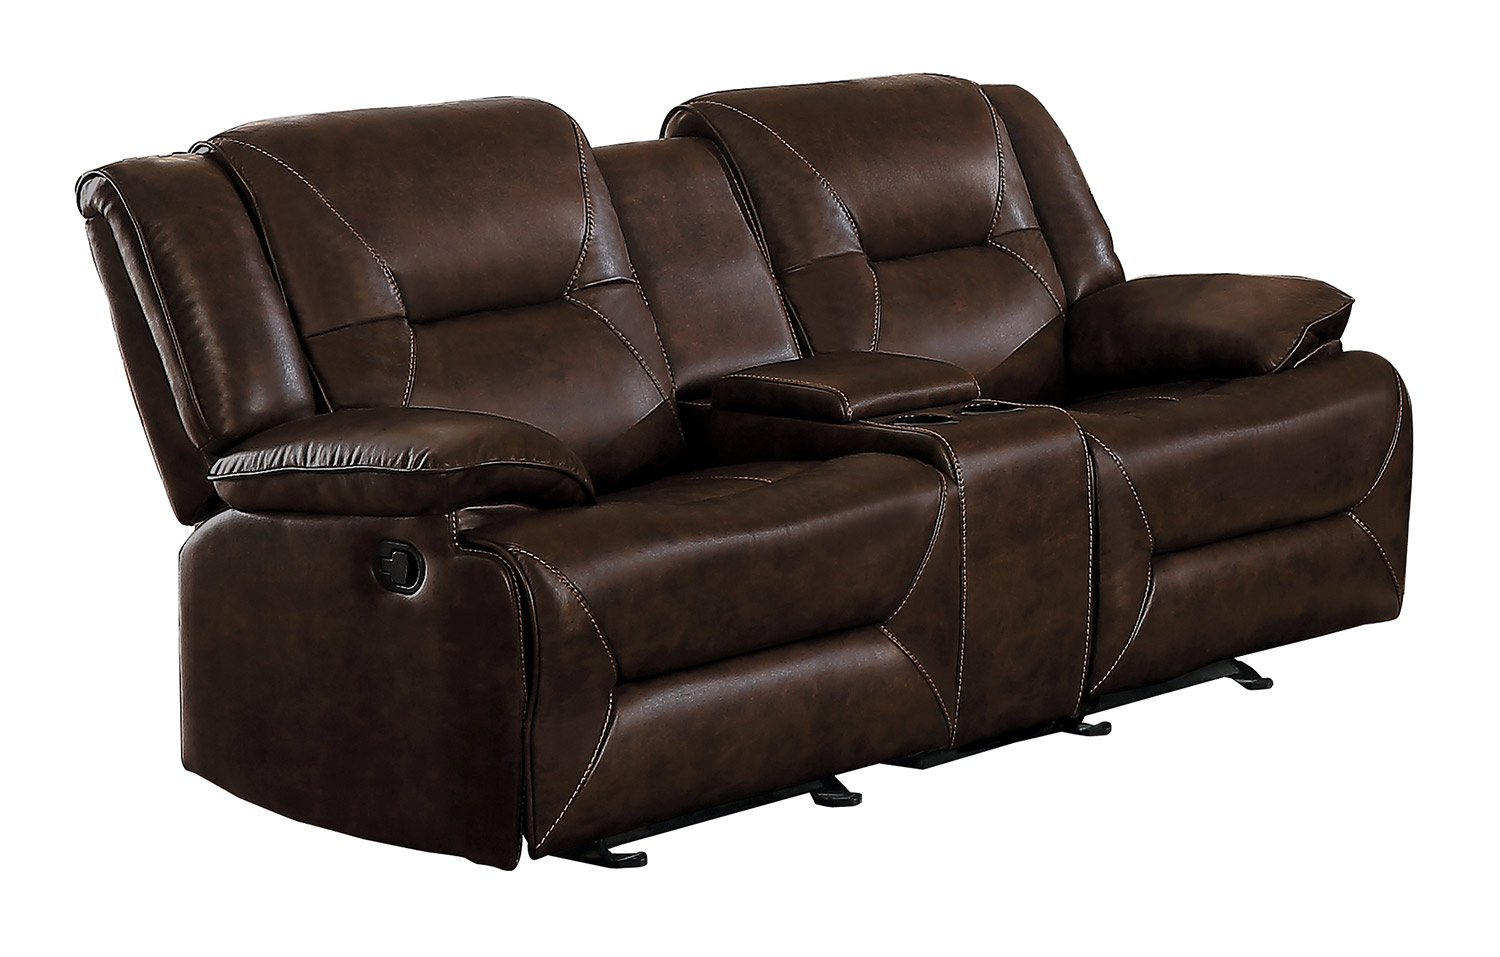 Homelegance Okello Double Glider Reclining Love Seat with Console - Brown AireHyde Match